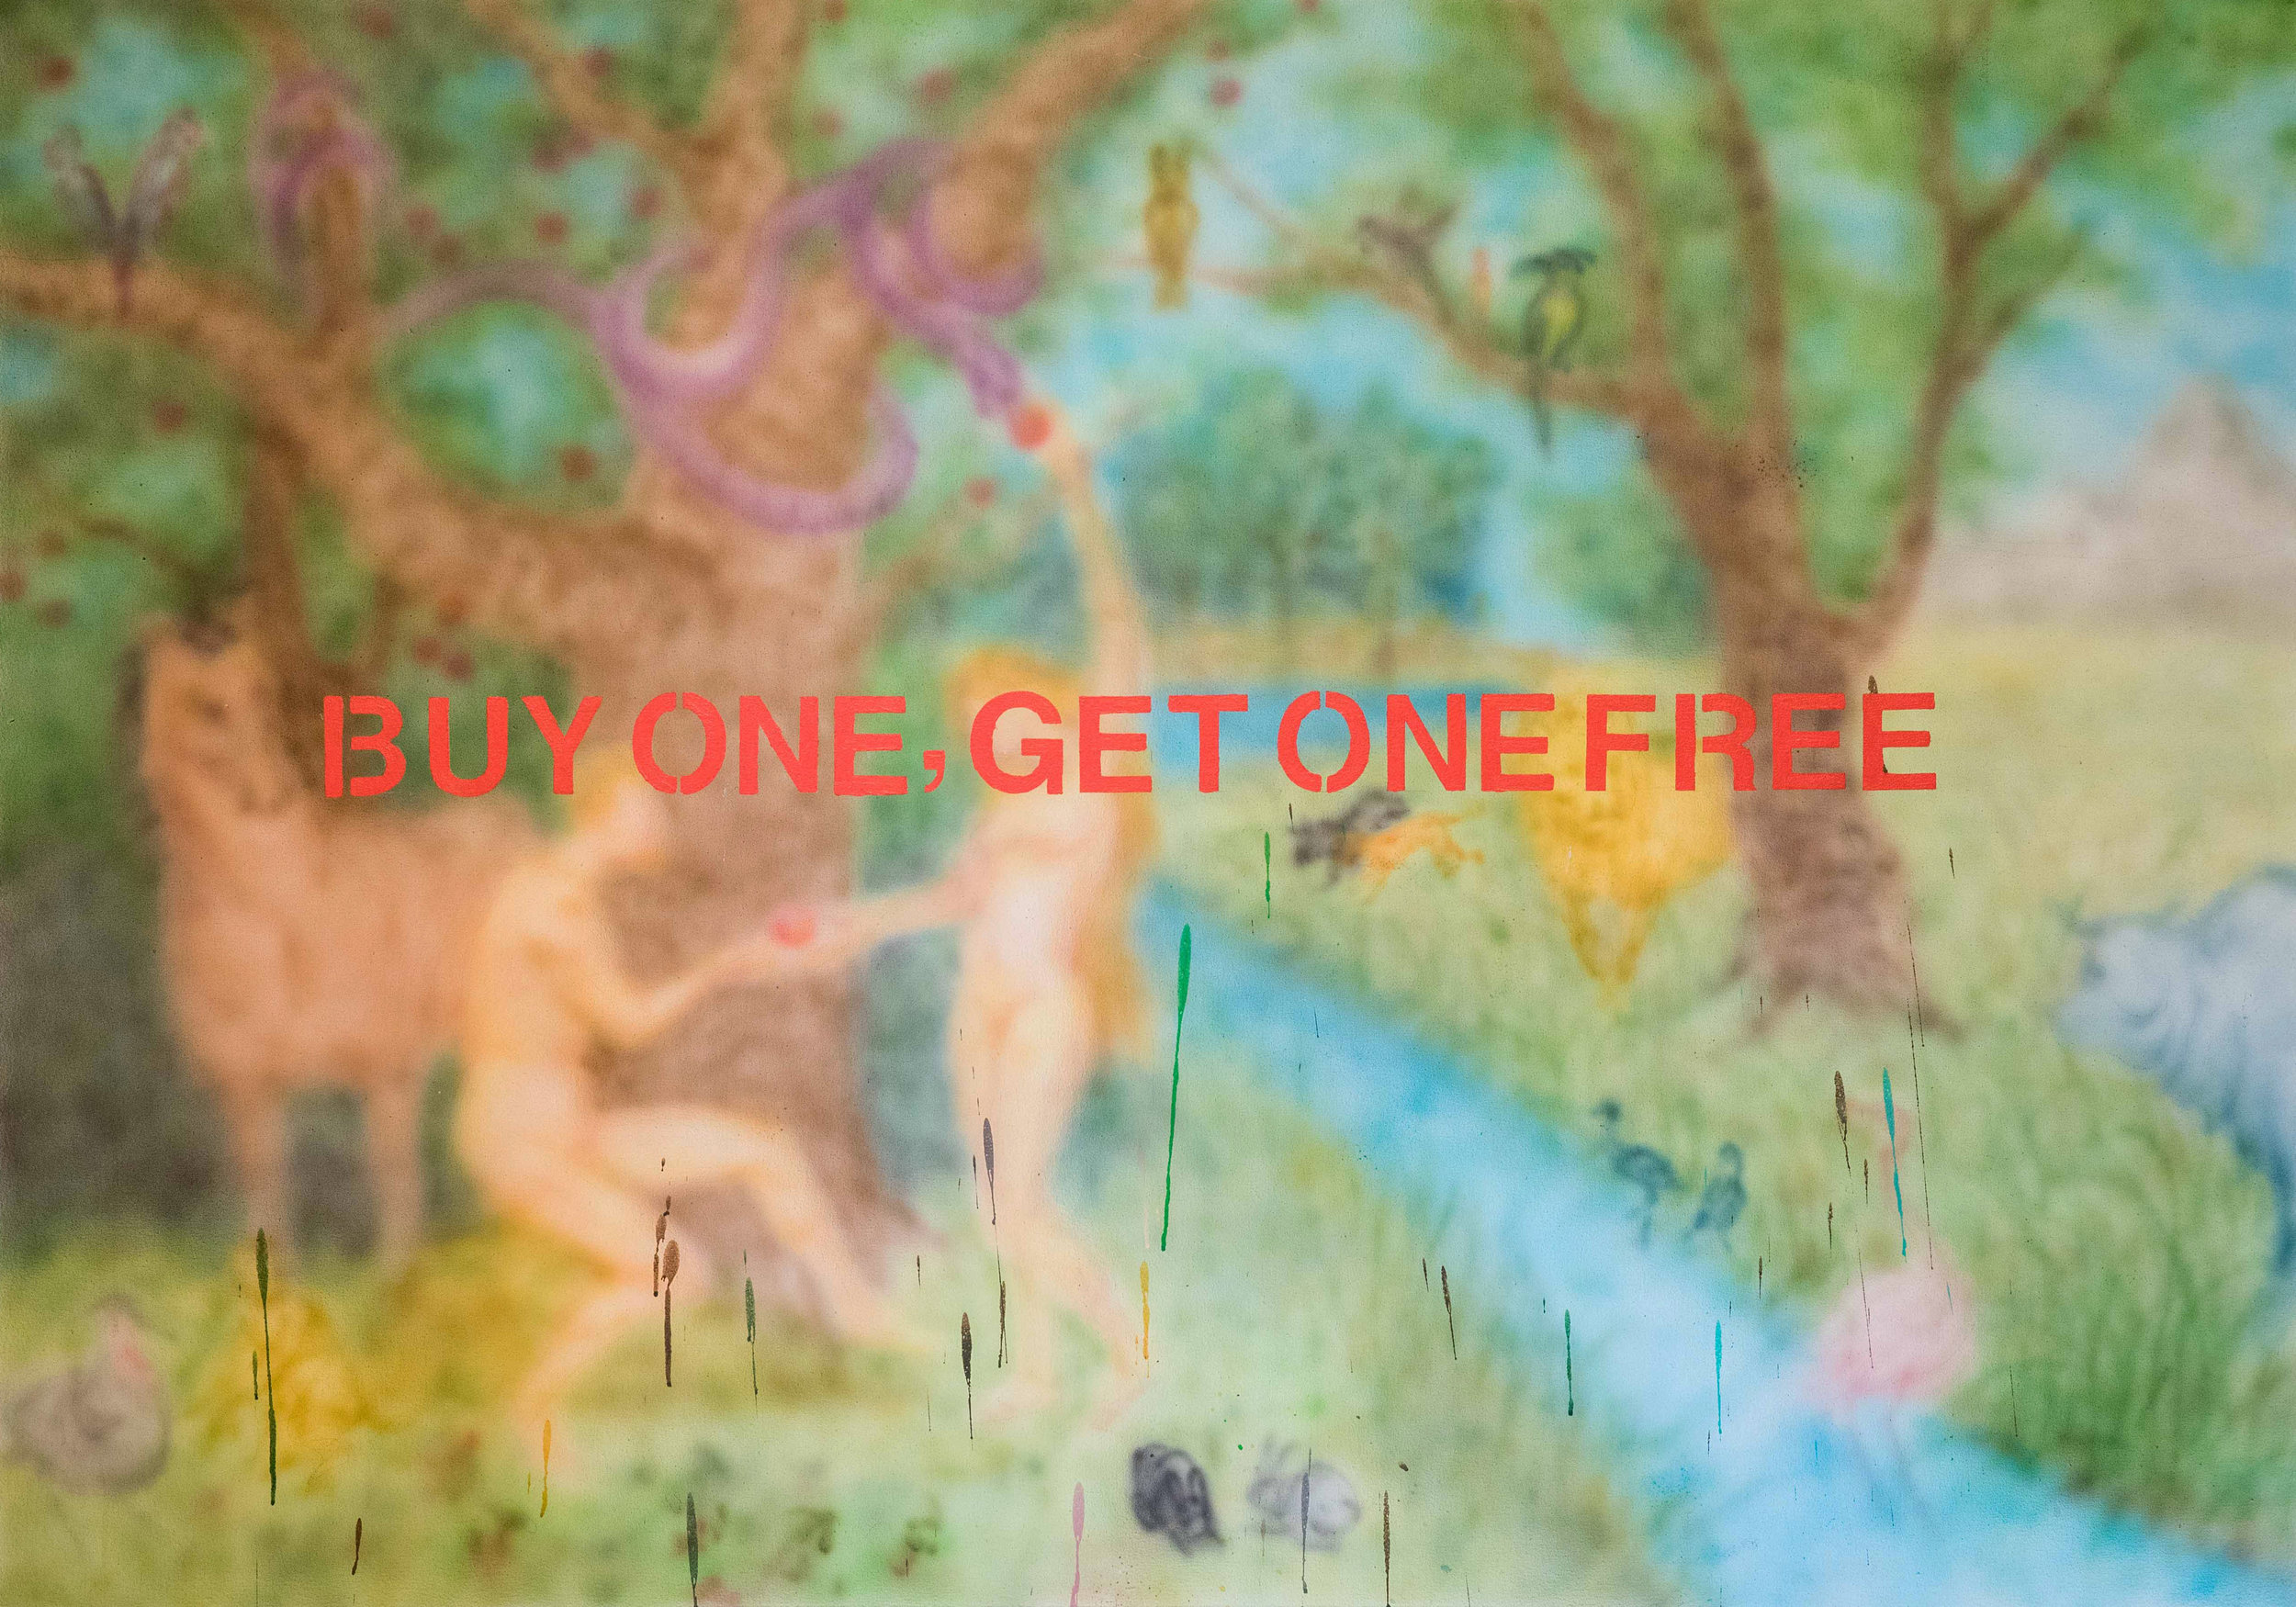 Siyuan Tan,  Buy One Get One Free,  2019. Spray paint and acrylic on canvas, 70 x 50 inch ©Siyuan Tan, courtesy Fou Gallery